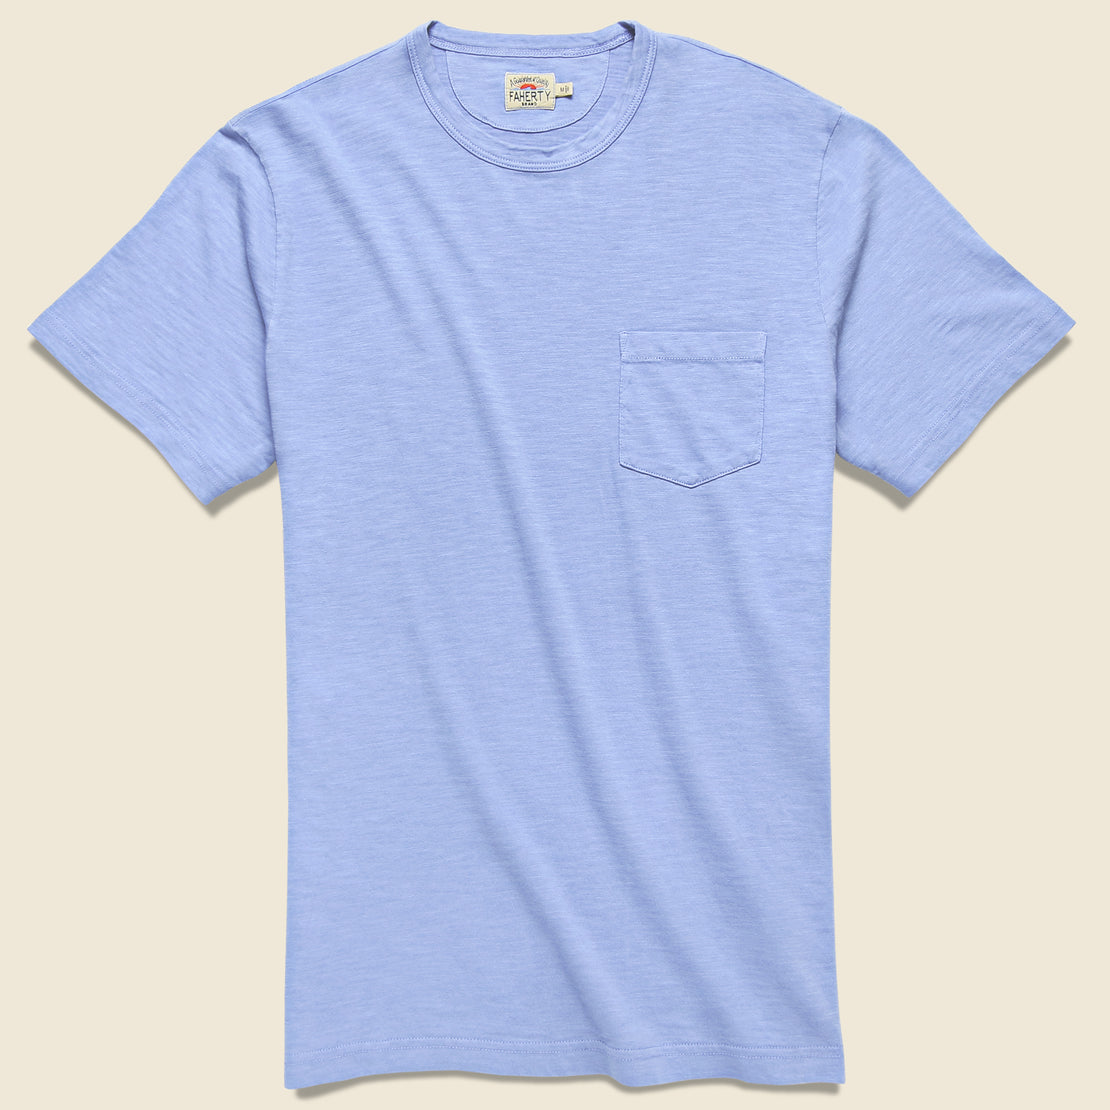 Faherty Garment Dyed Pocket Tee - Lilac